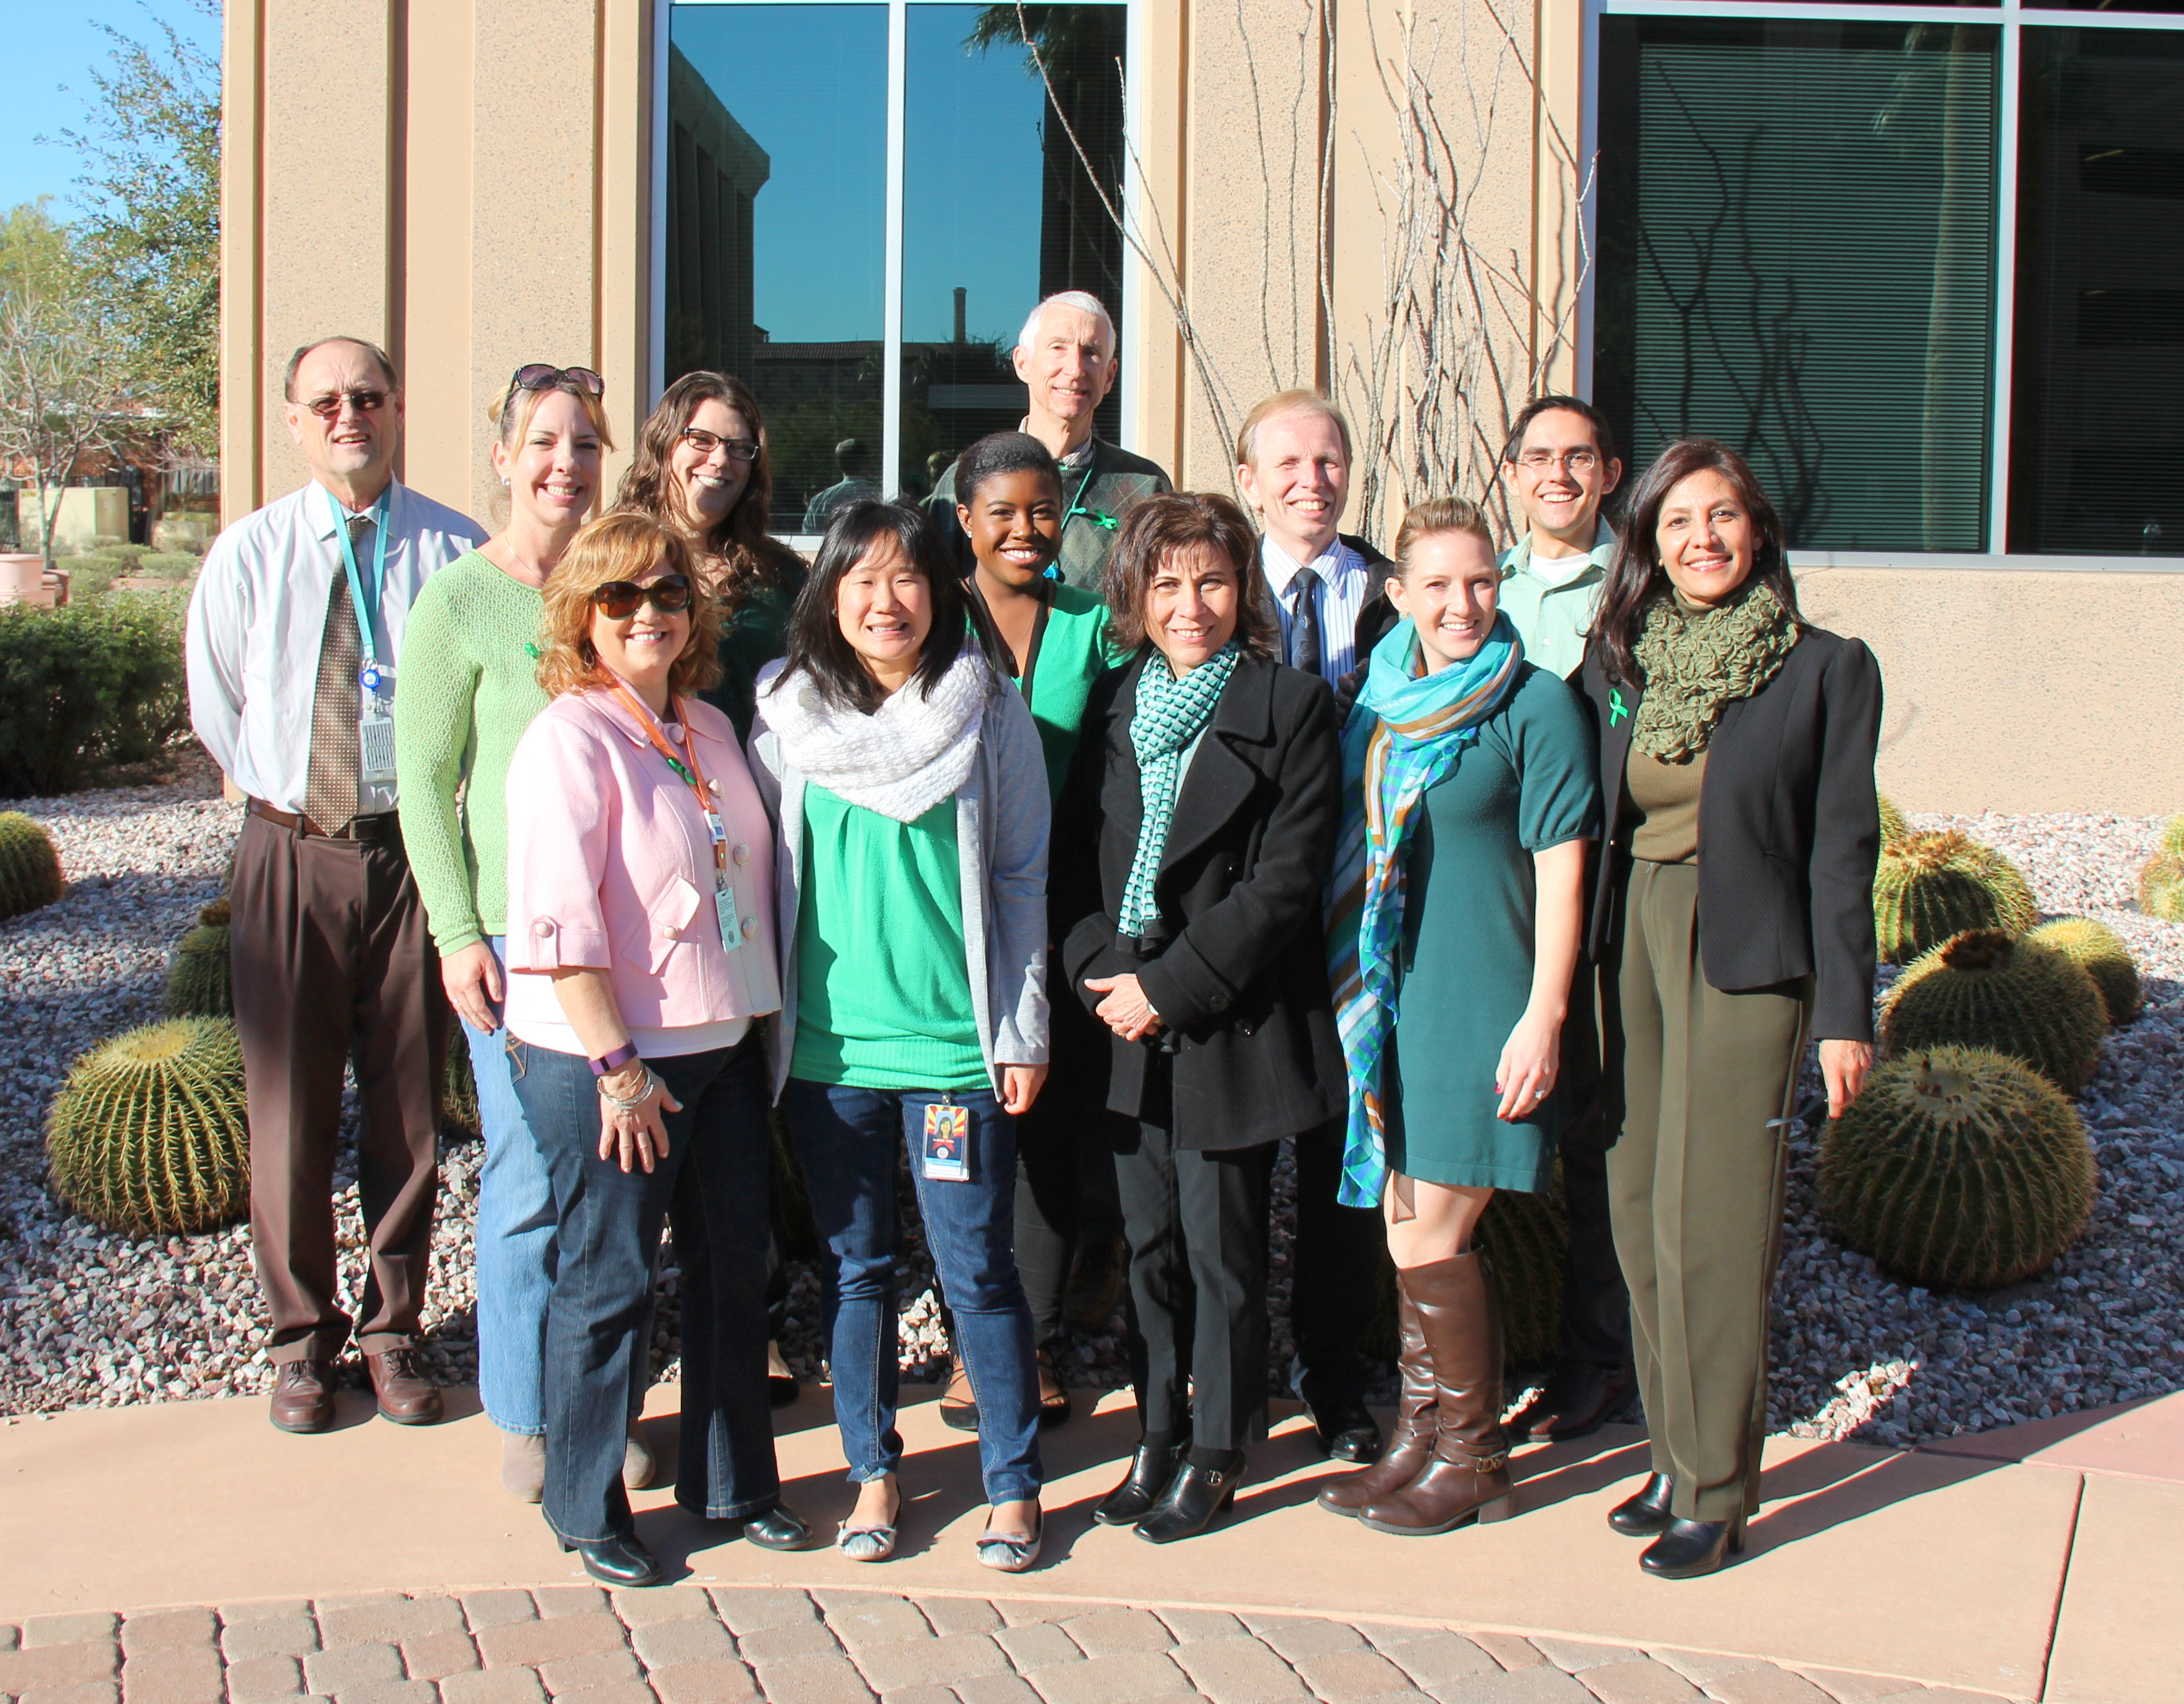 Our employees wore green and jeans this week to raise awareness of folic acid and its benefits before and during pregnancy.